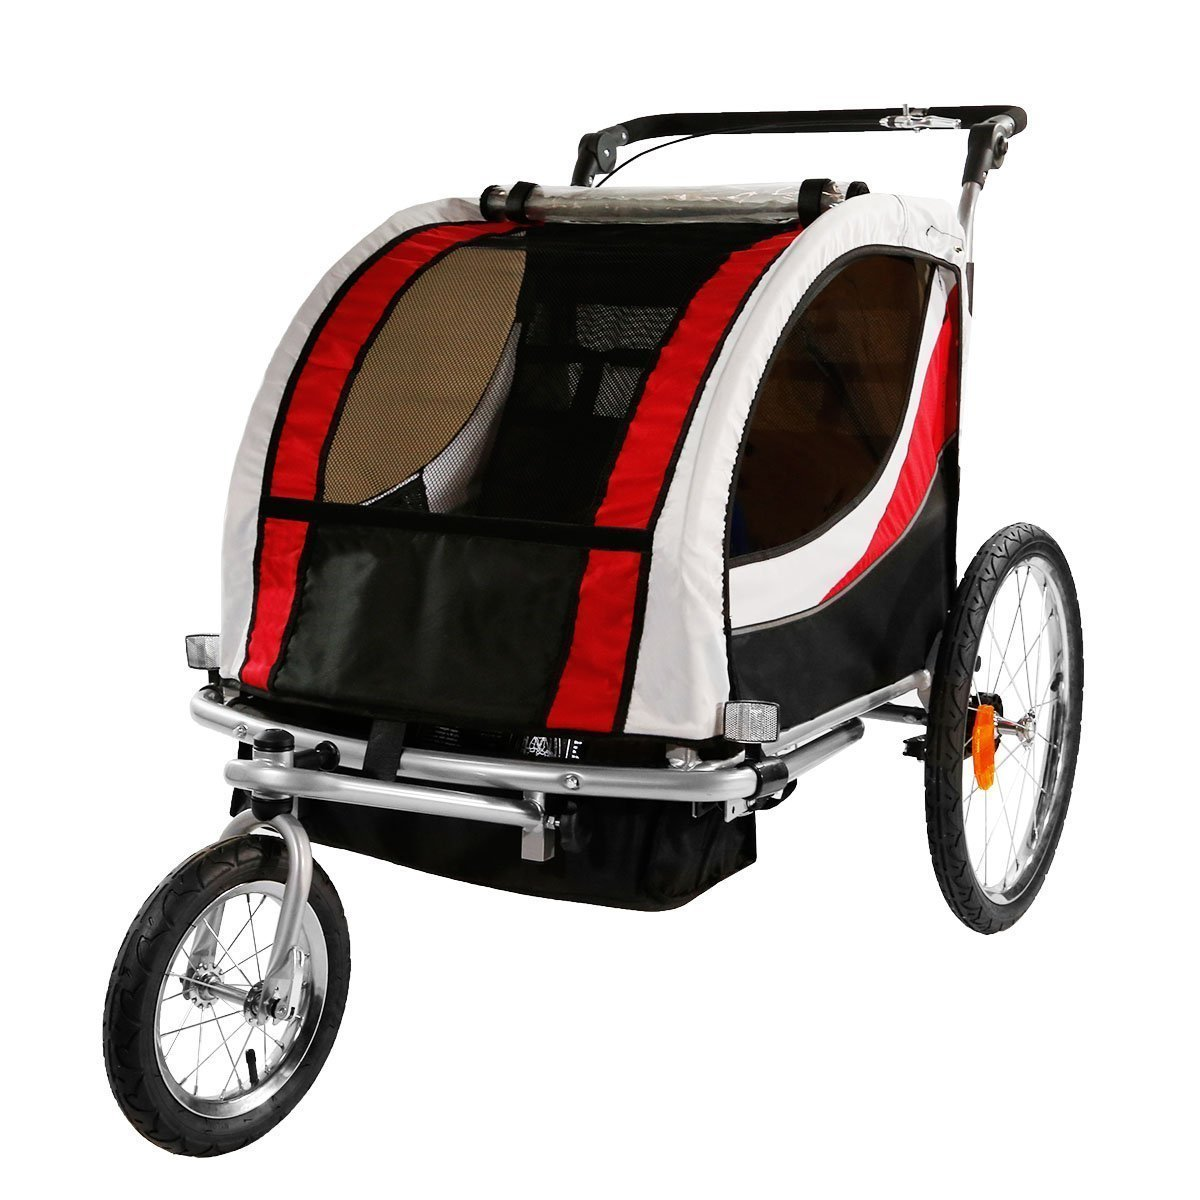 Clevr 2-In-1 Bicycle Trailer